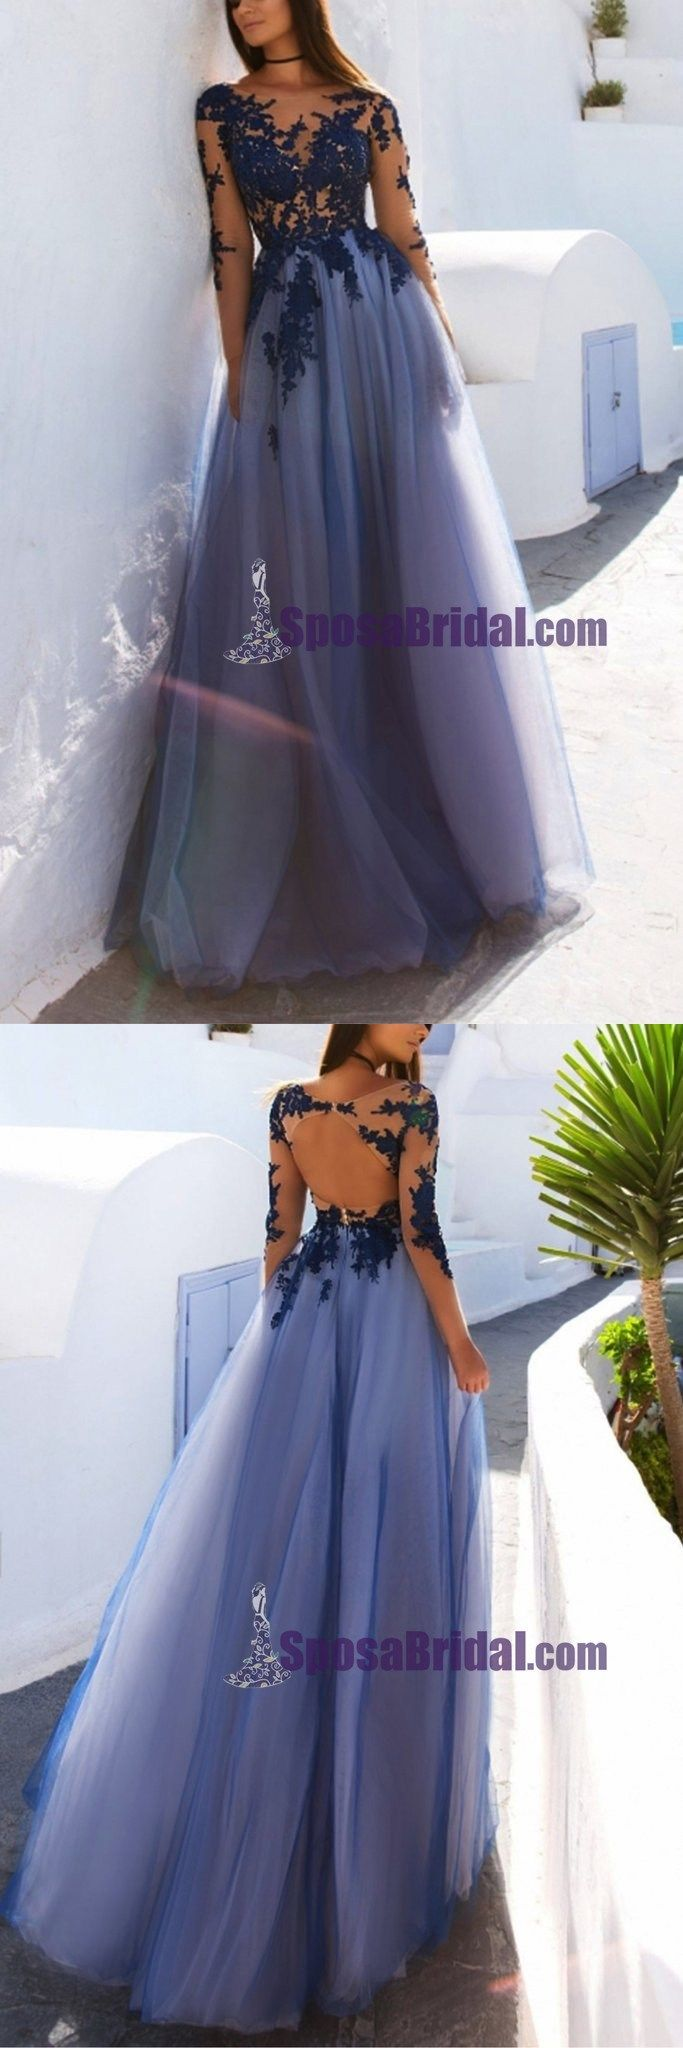 Custom Formal Sexy Colorful Lace Long Sleeve Open Back Long Evening Prom Dresses, PD0660